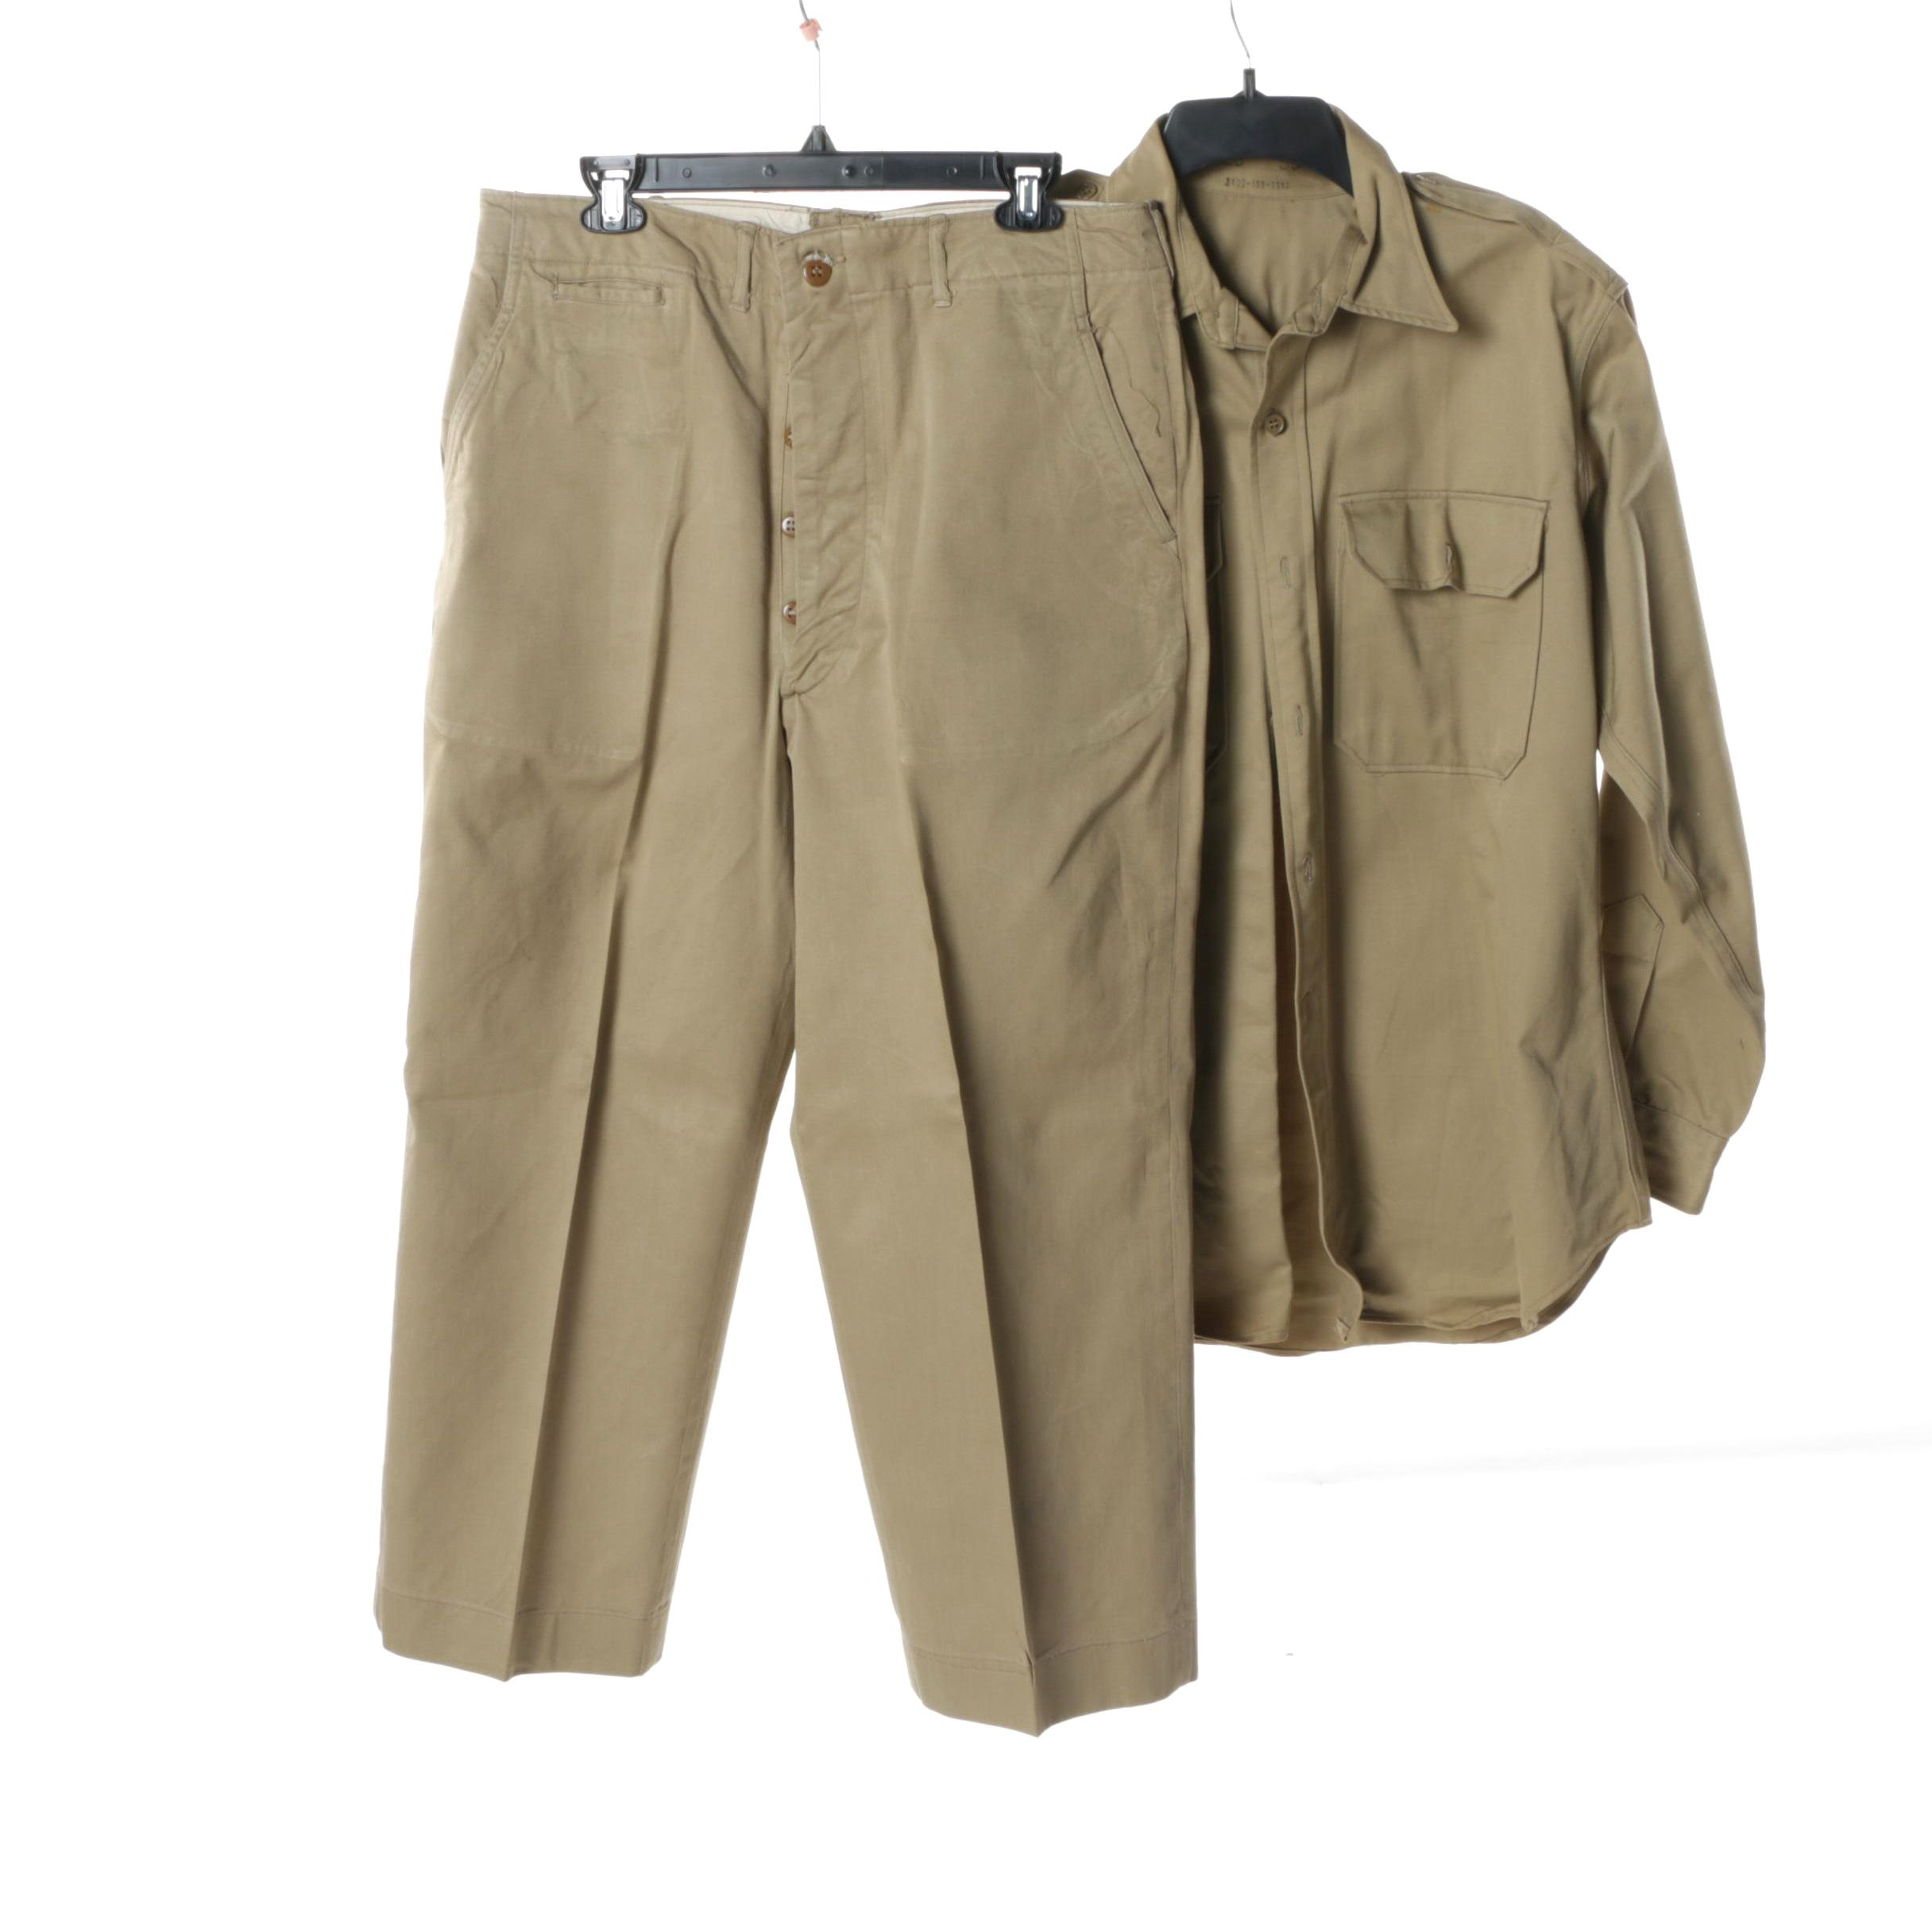 Men's 1950s Vintage US Army Khaki Trousers and Shirt